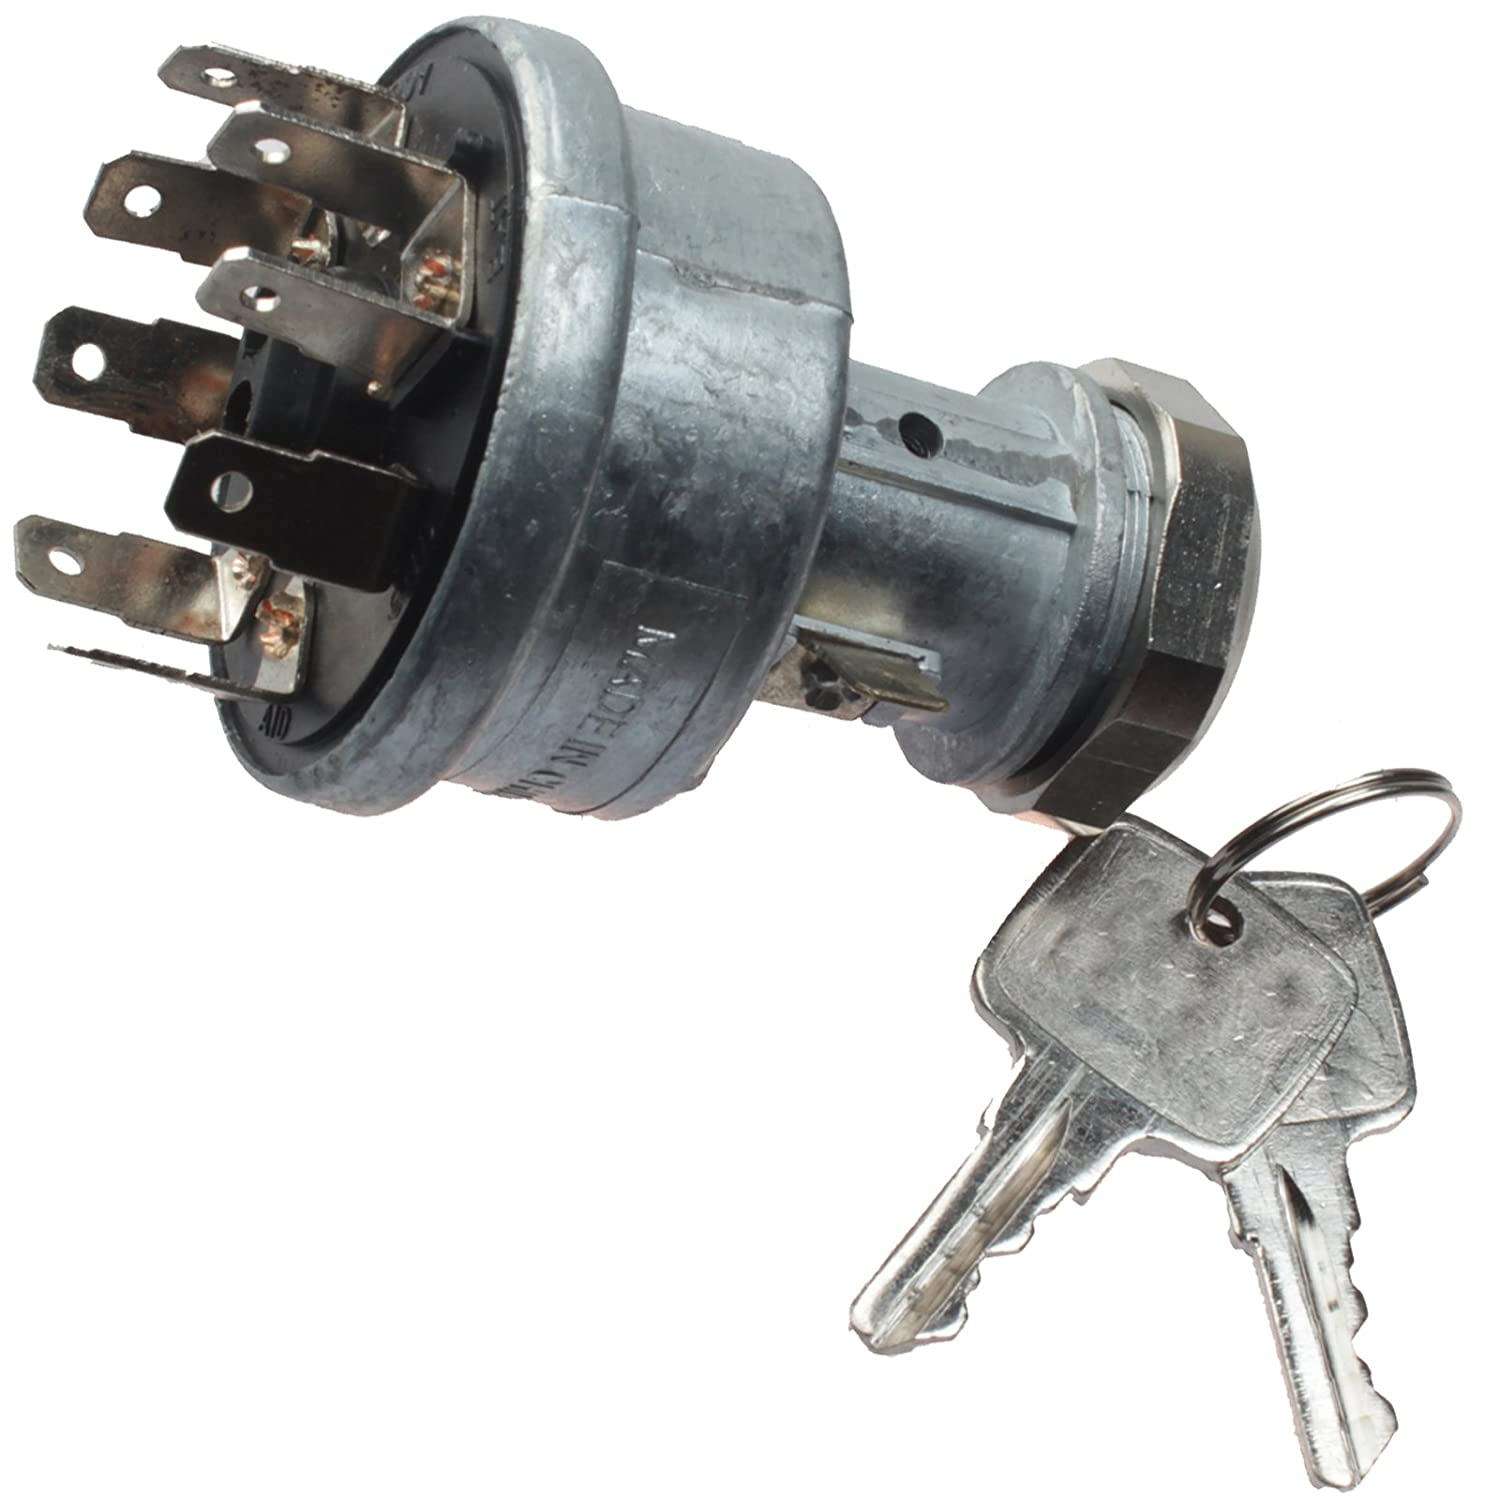 amazon com holdwell rotary switch re45963 for john deere 5200 5300 amazon com holdwell rotary switch re45963 for john deere 5200 5300 5400 5500 5210 5310 5410 5510 4200 4500 4300 4400 4600 4700 automotive